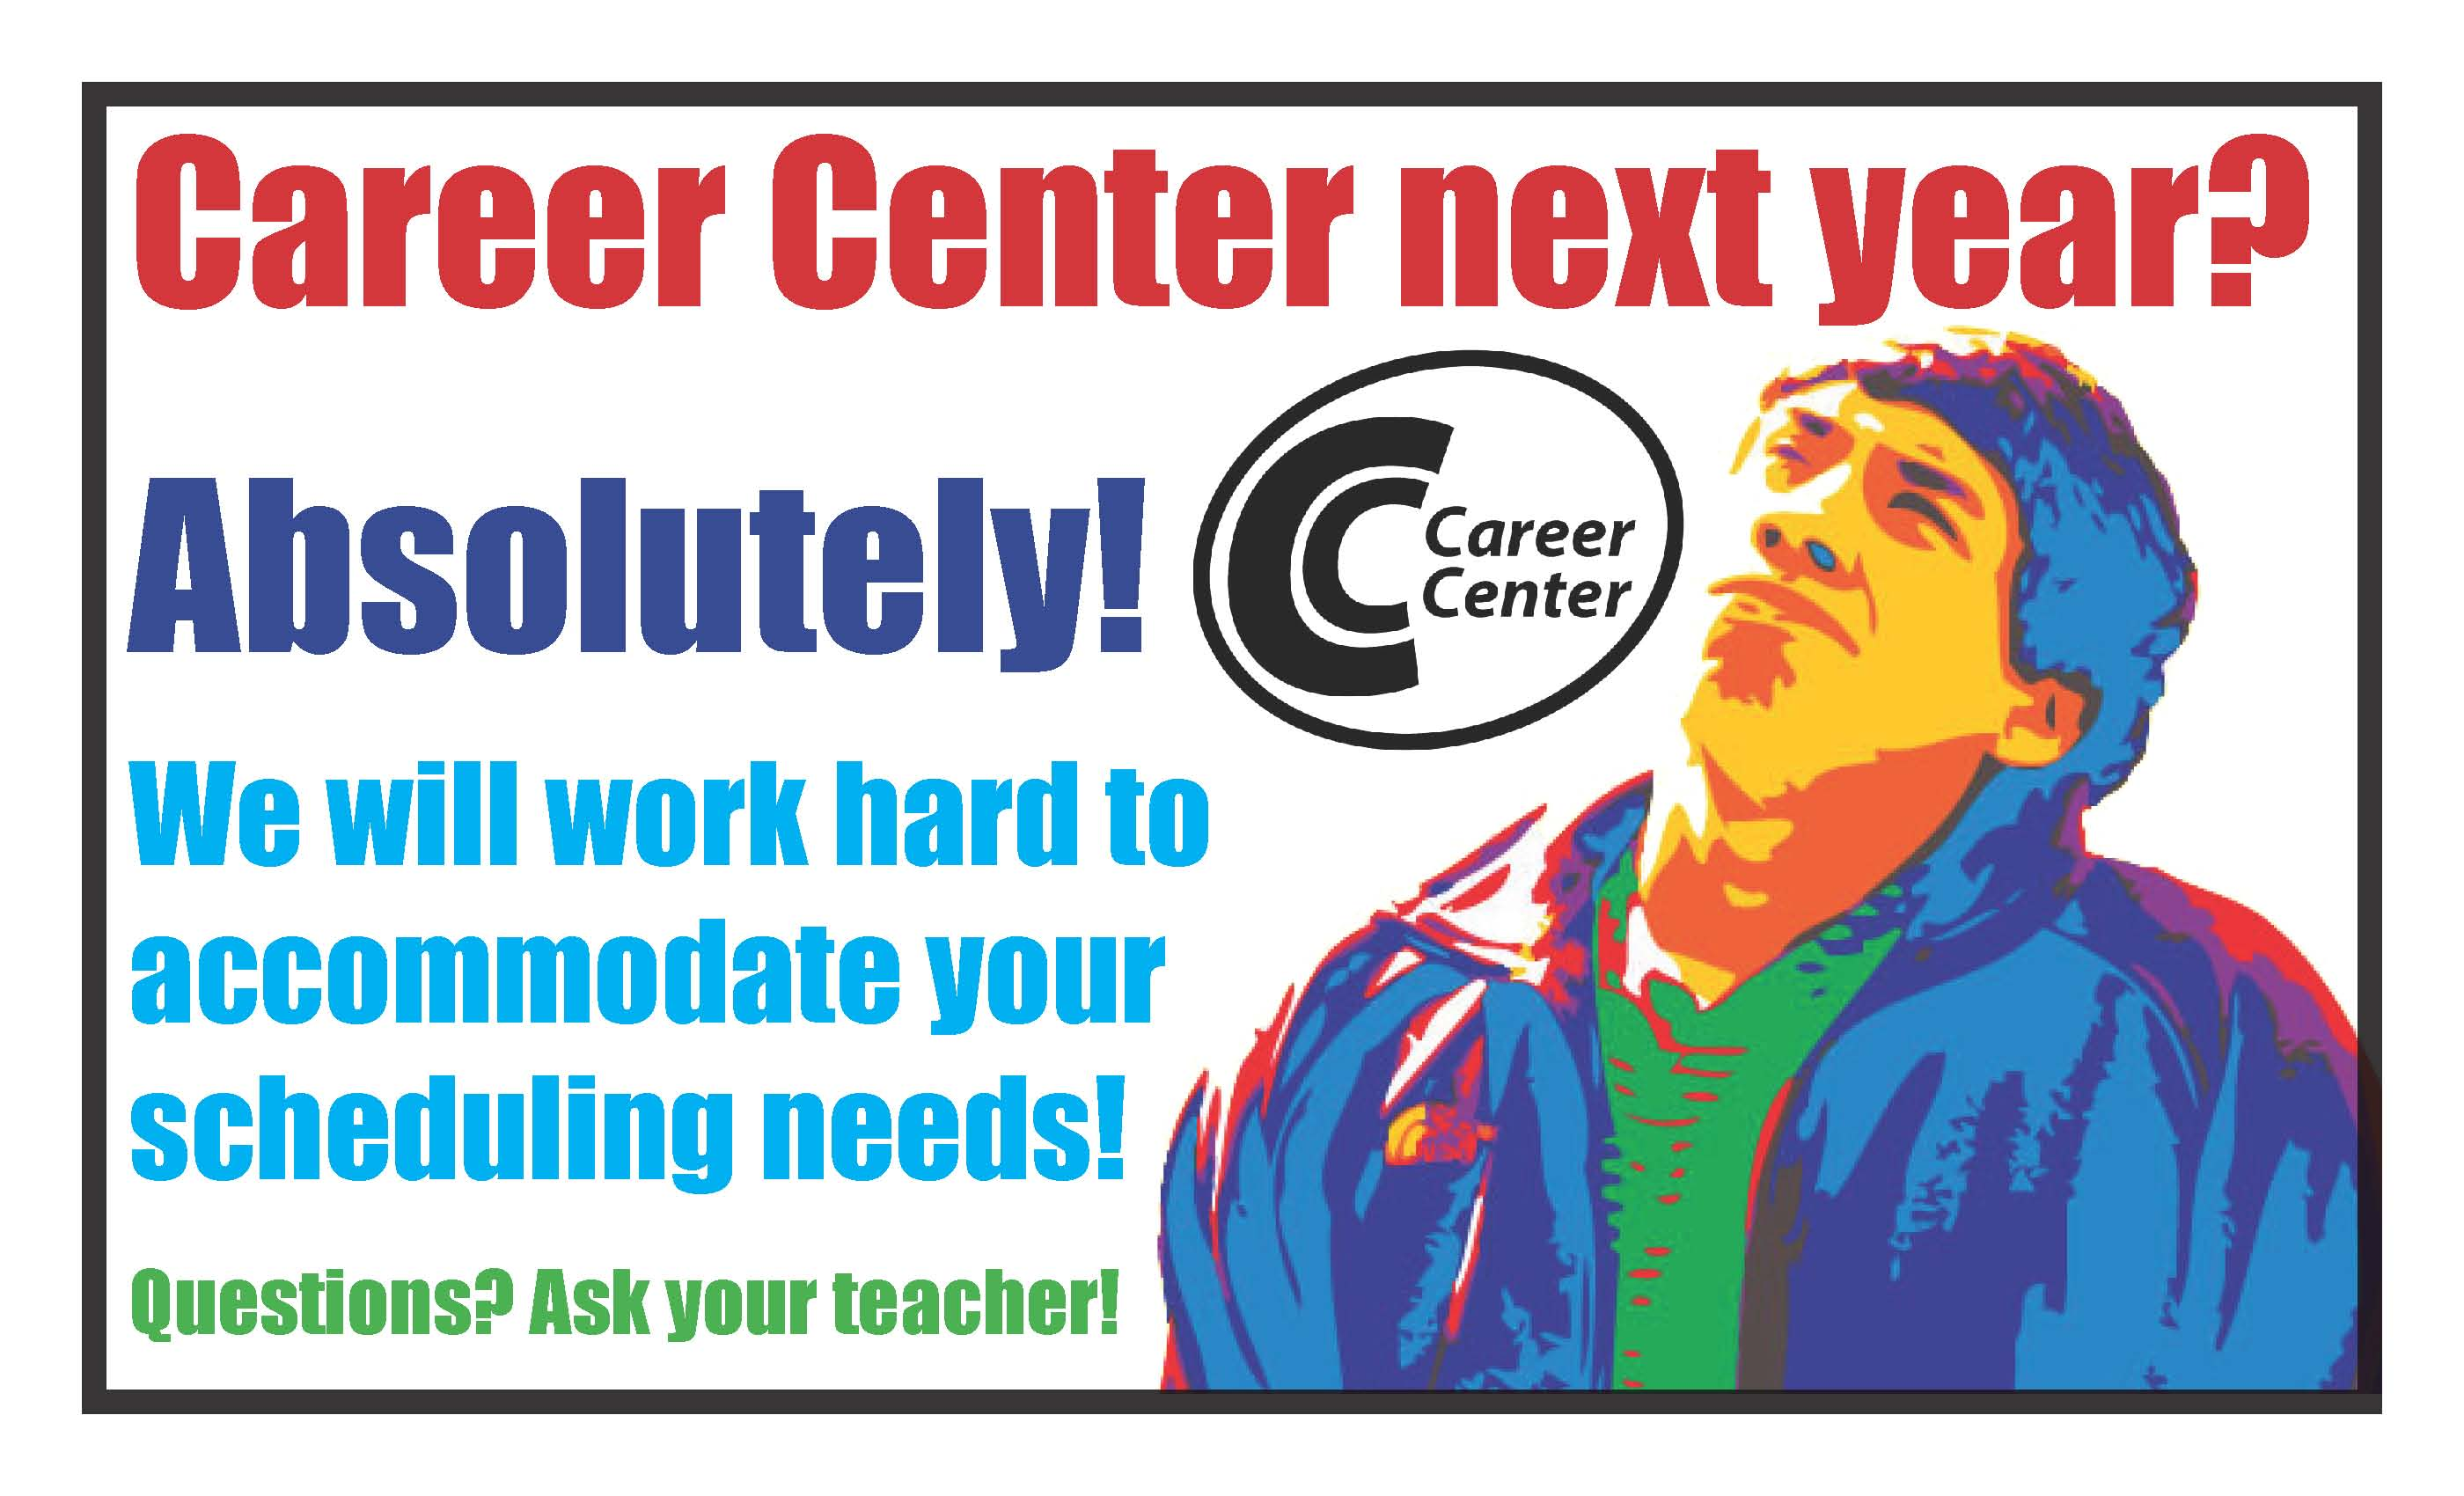 Career Center Scheduling Options